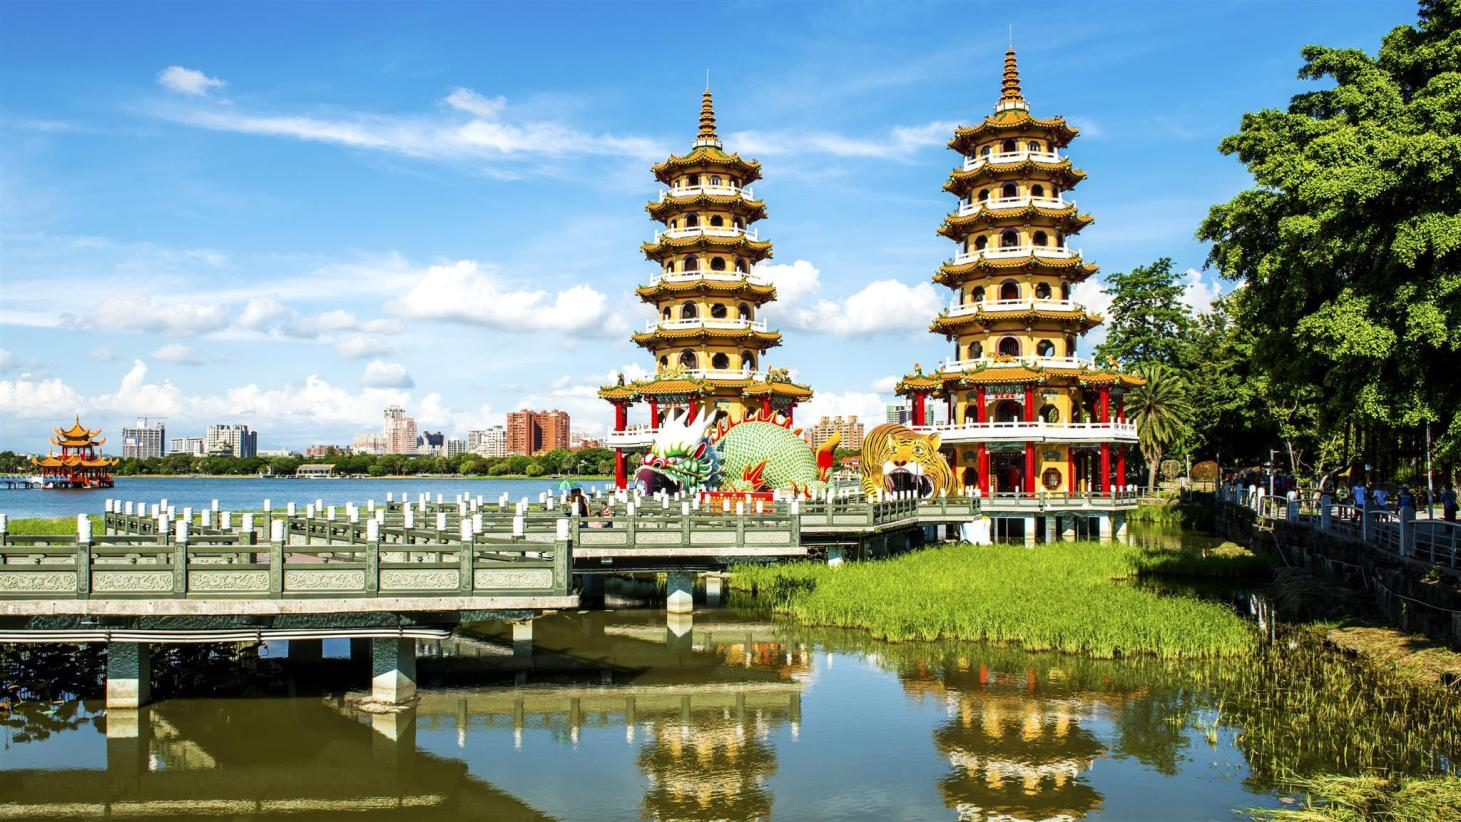 10 Best Kaohsiung Hotels: HD Photos + Reviews of Hotels in